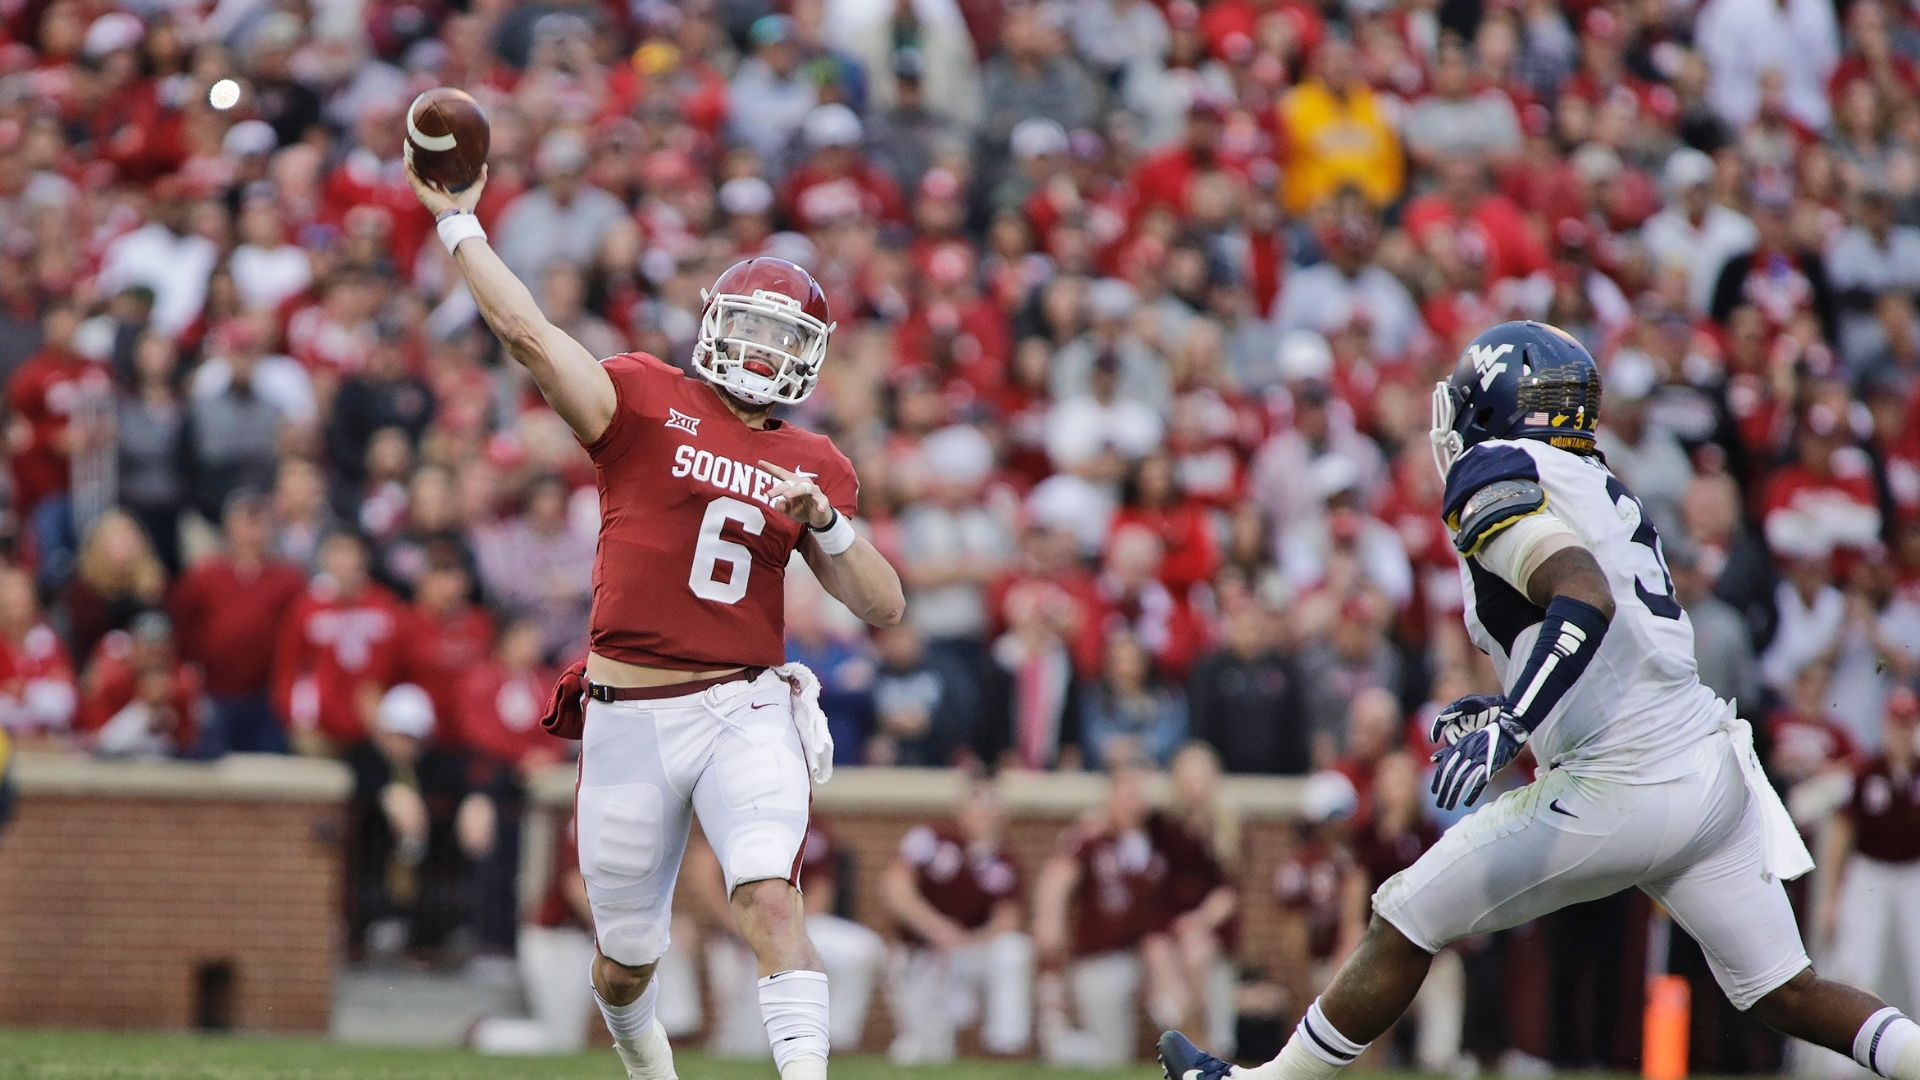 After two-play suspension, Baker Mayfield comes off bench to crush West Virginia